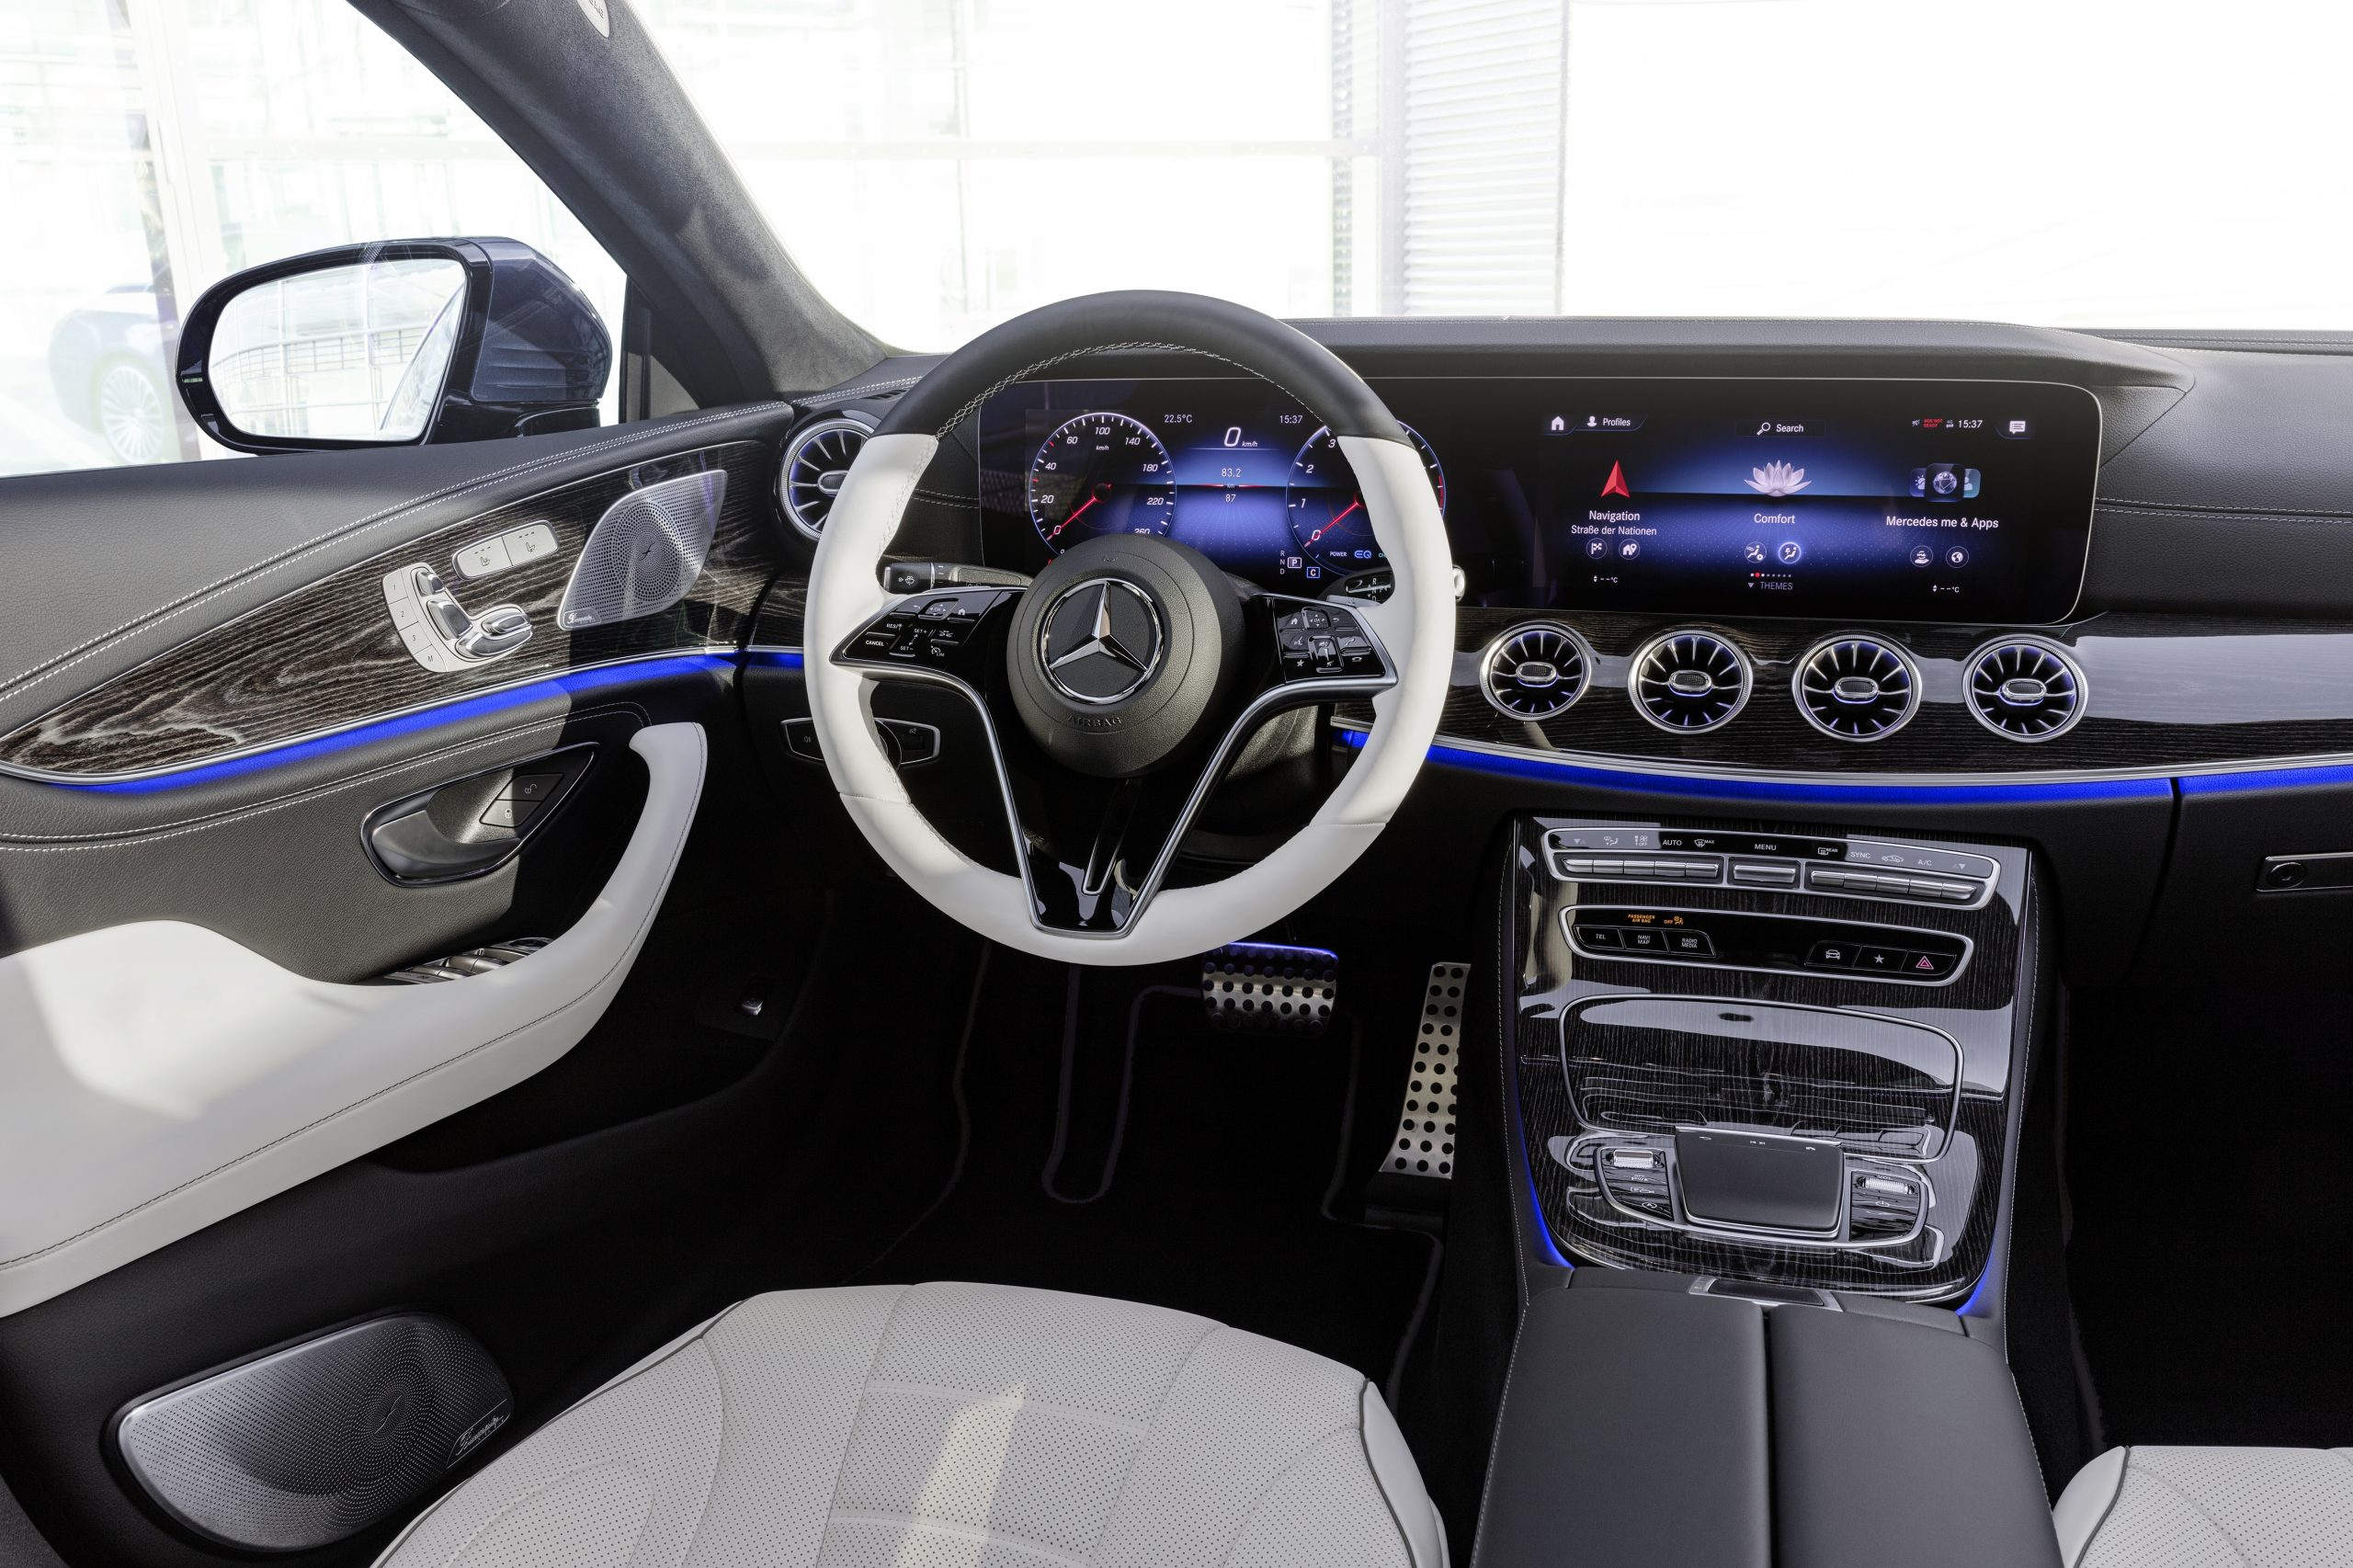 2021 Mercedes-Benz CLS 450 4Matic Coupé interior front cabin